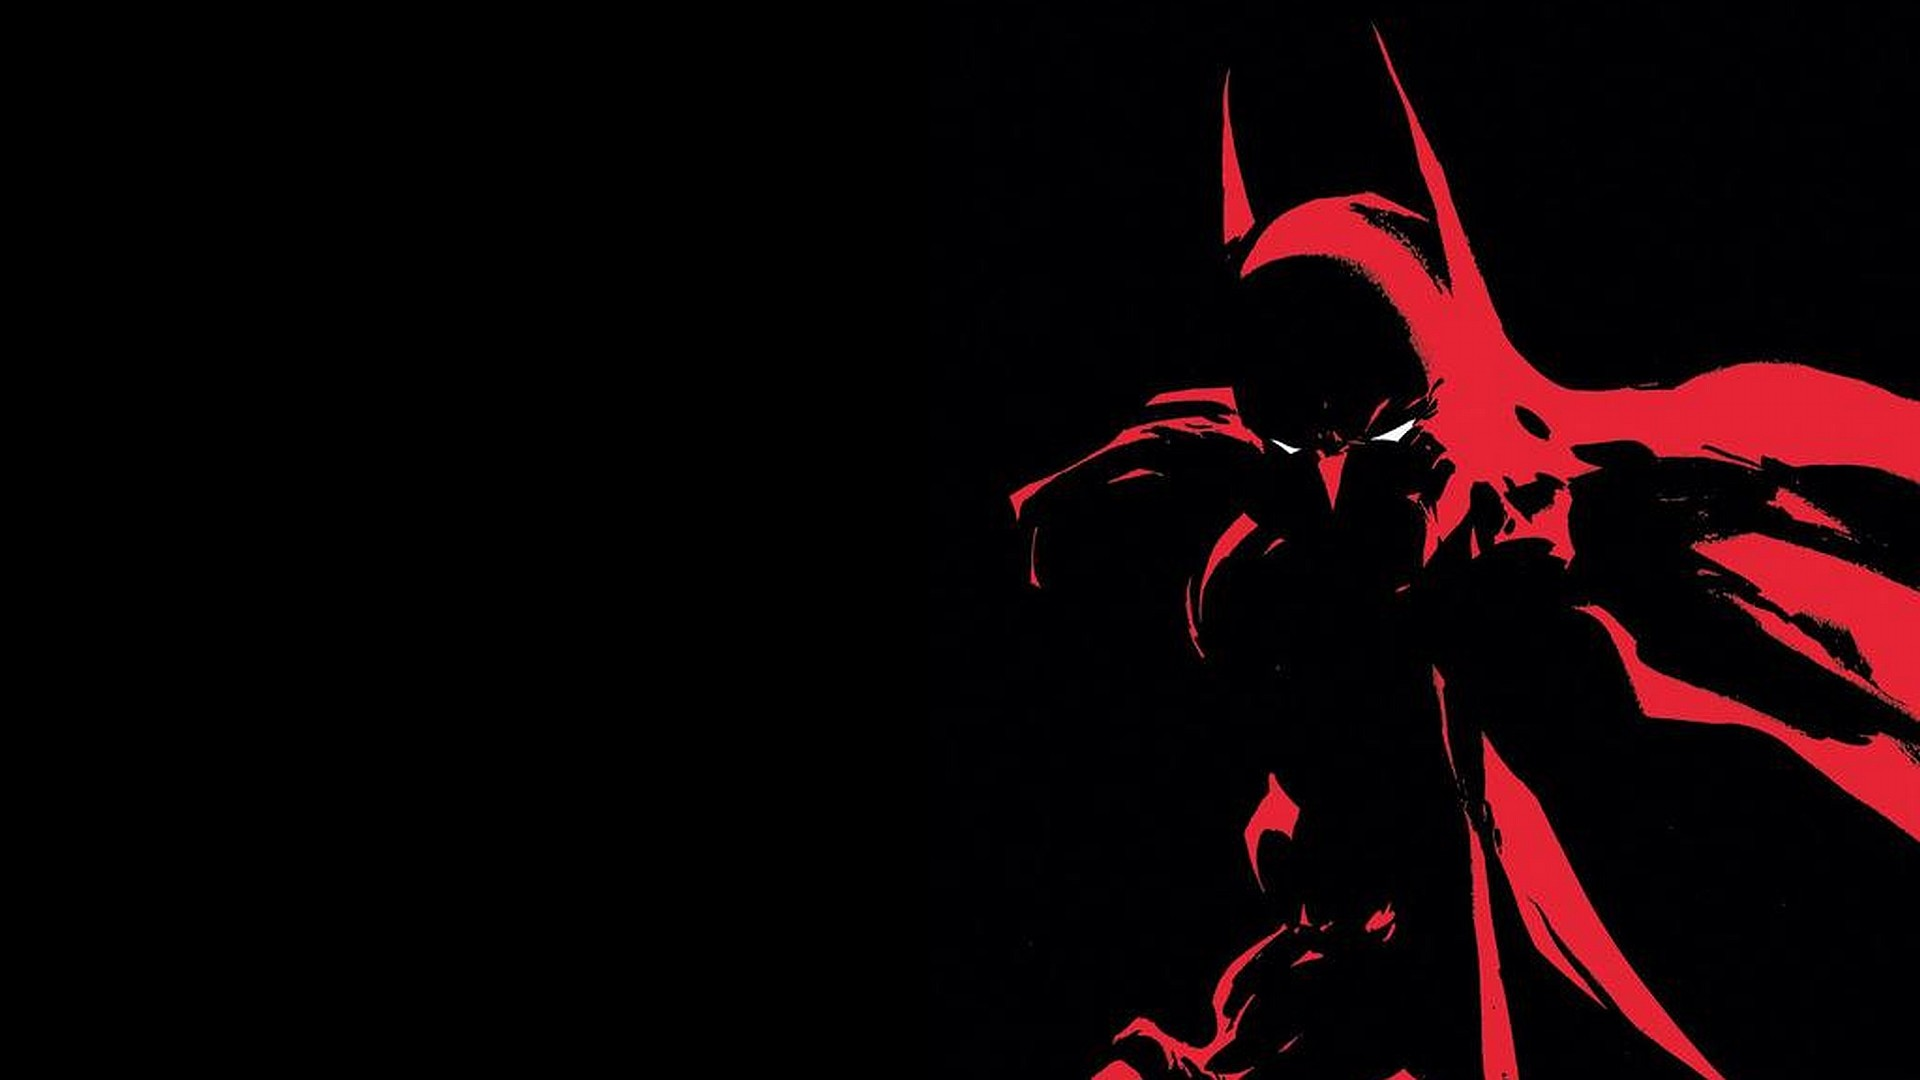 Free batman in red and black wallpaper background